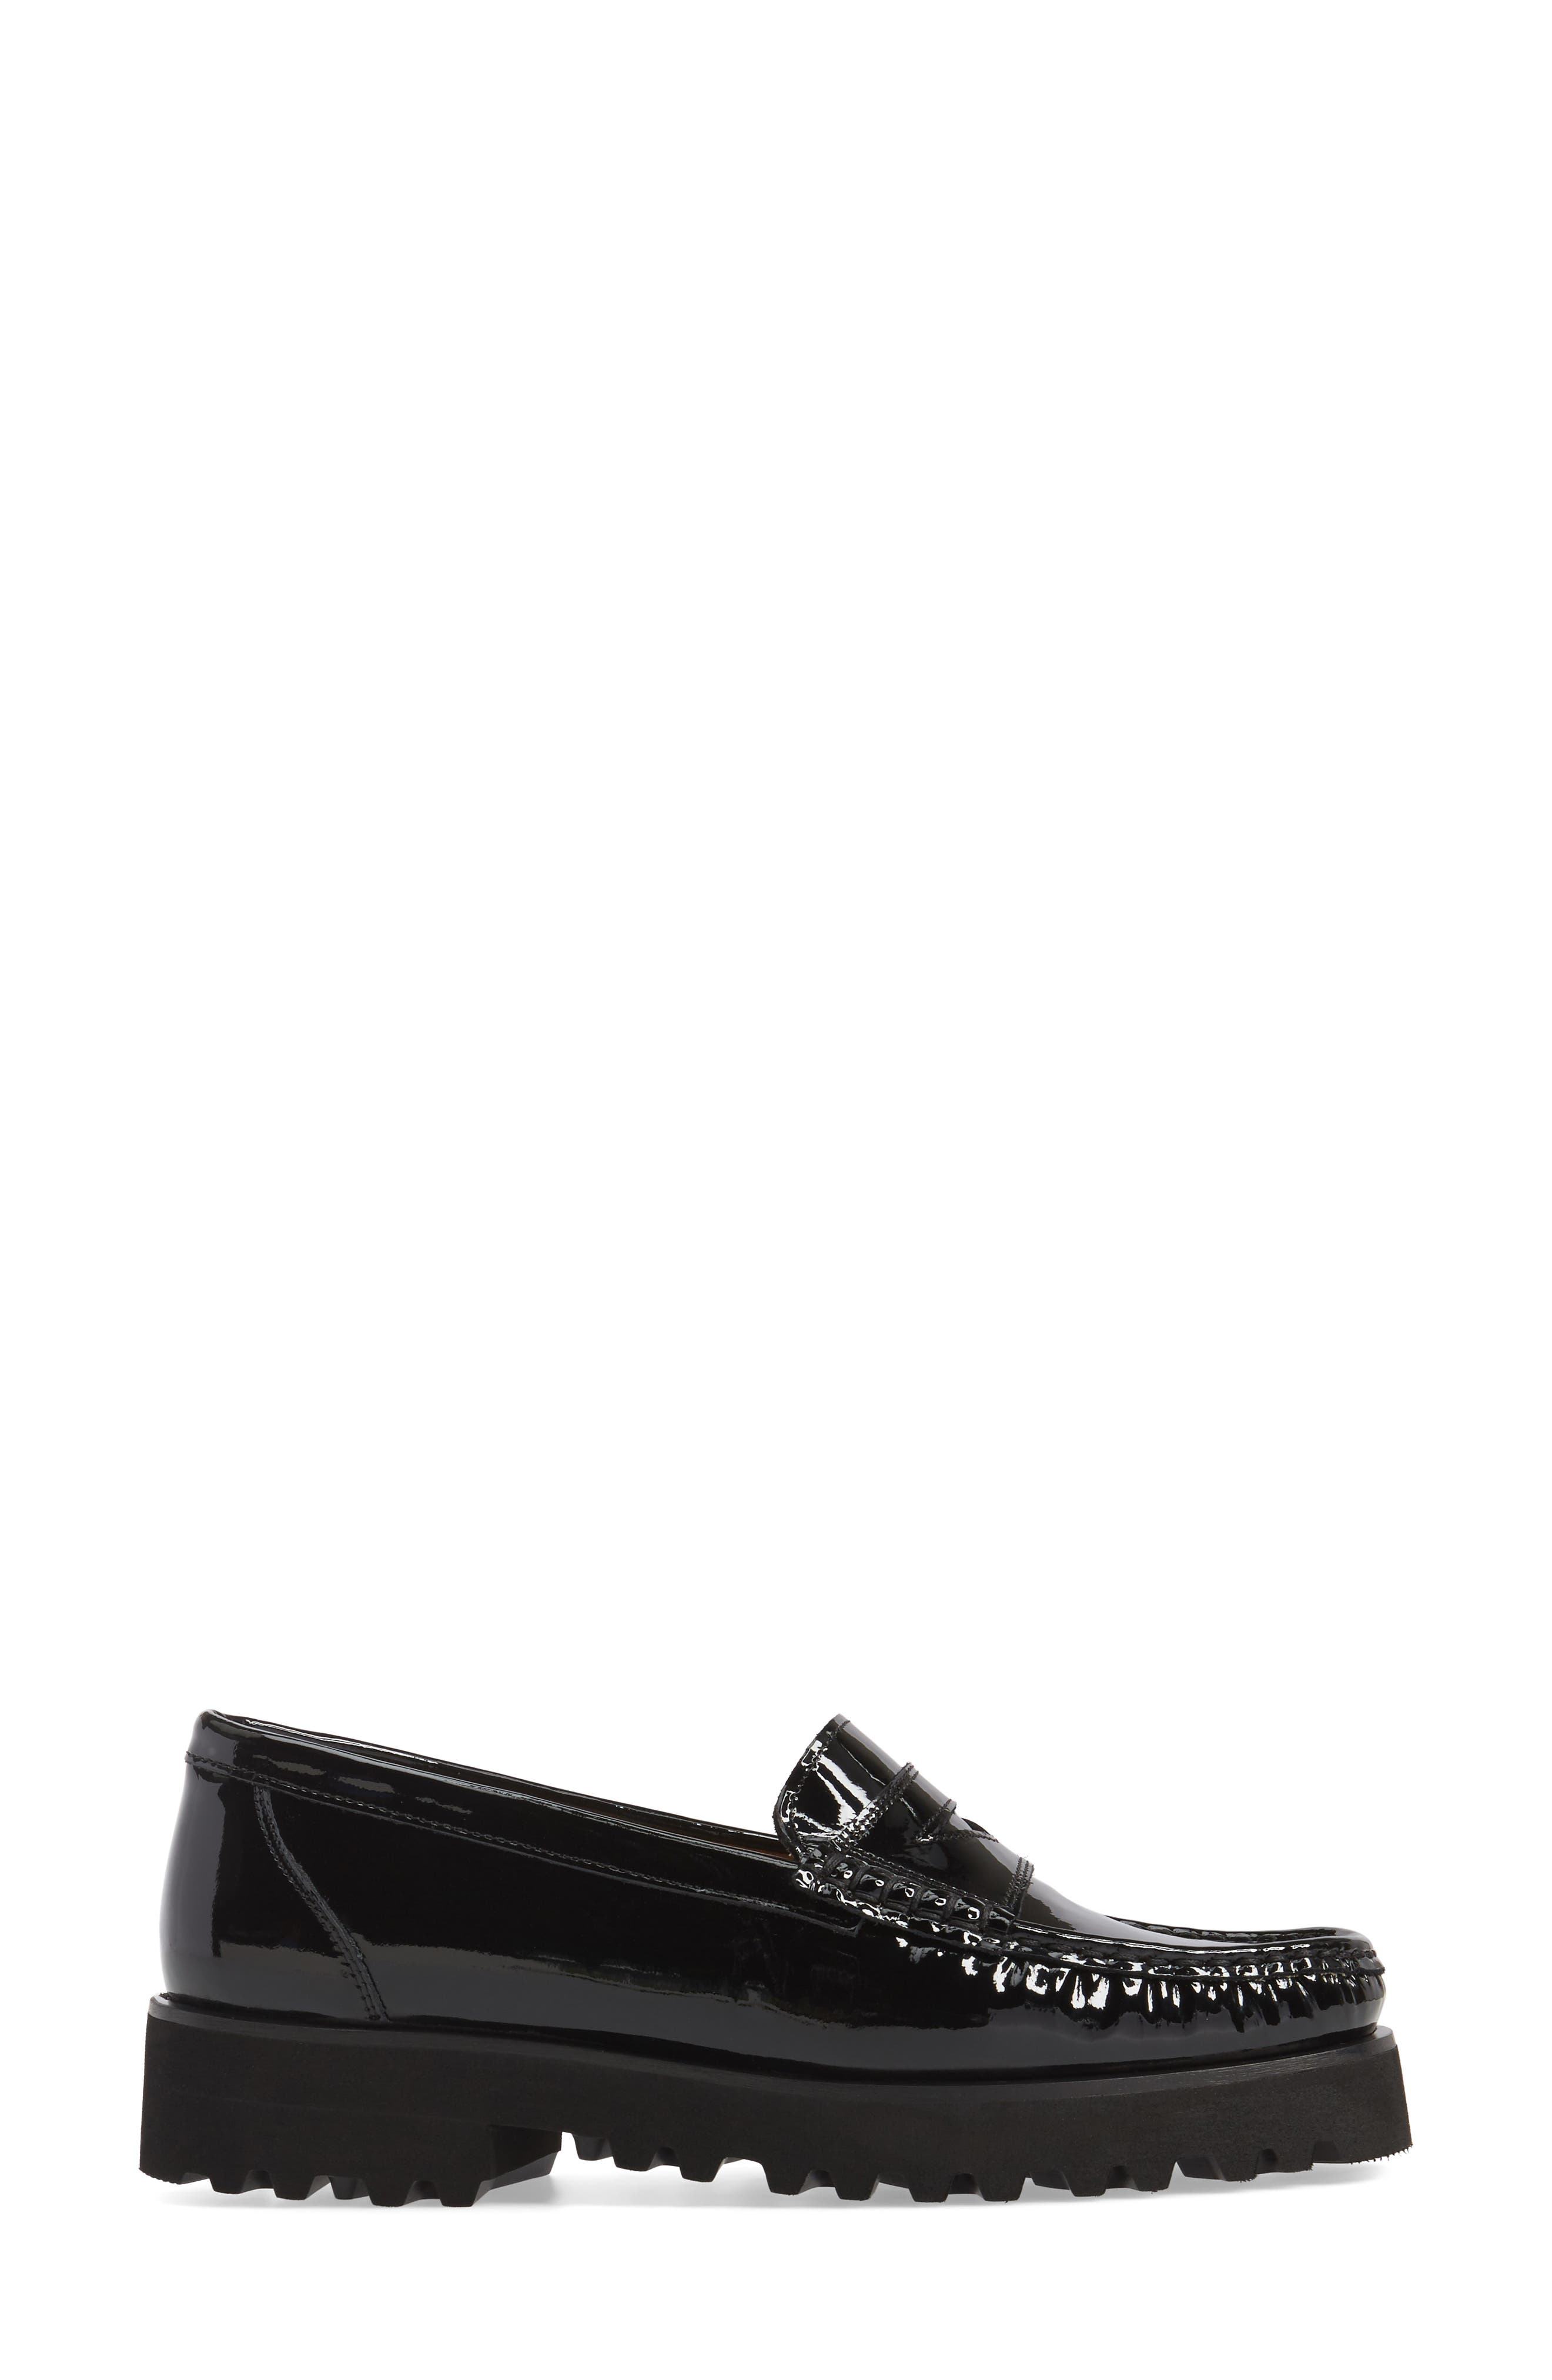 Rita Platform Penny Loafer,                             Alternate thumbnail 3, color,                             Onyx Patent